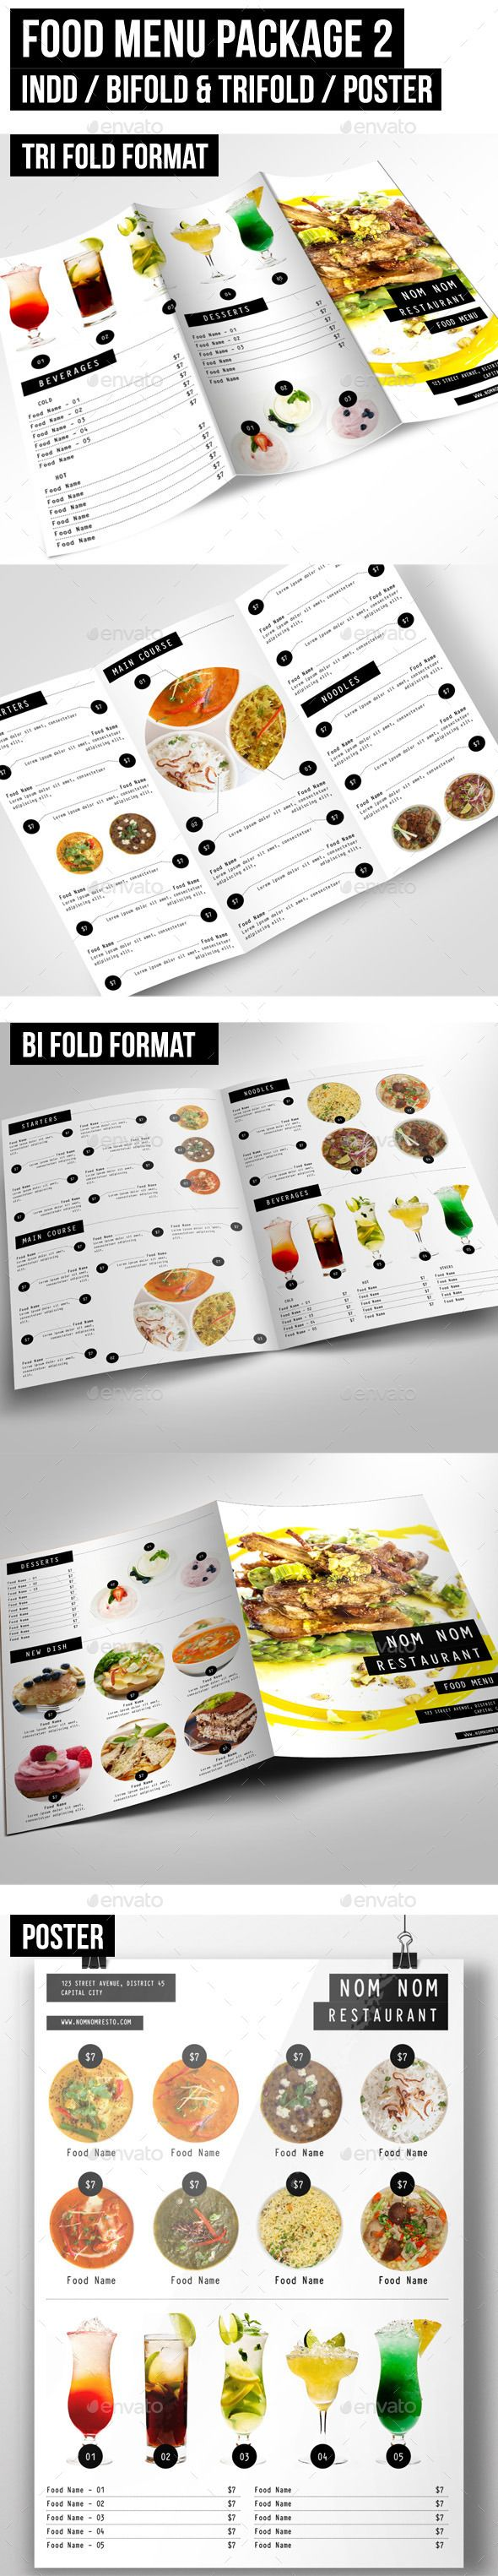 Food Menu Template #design Download: http://graphicriver.net/item/food-menu-package-2/10014272?ref=ksioks